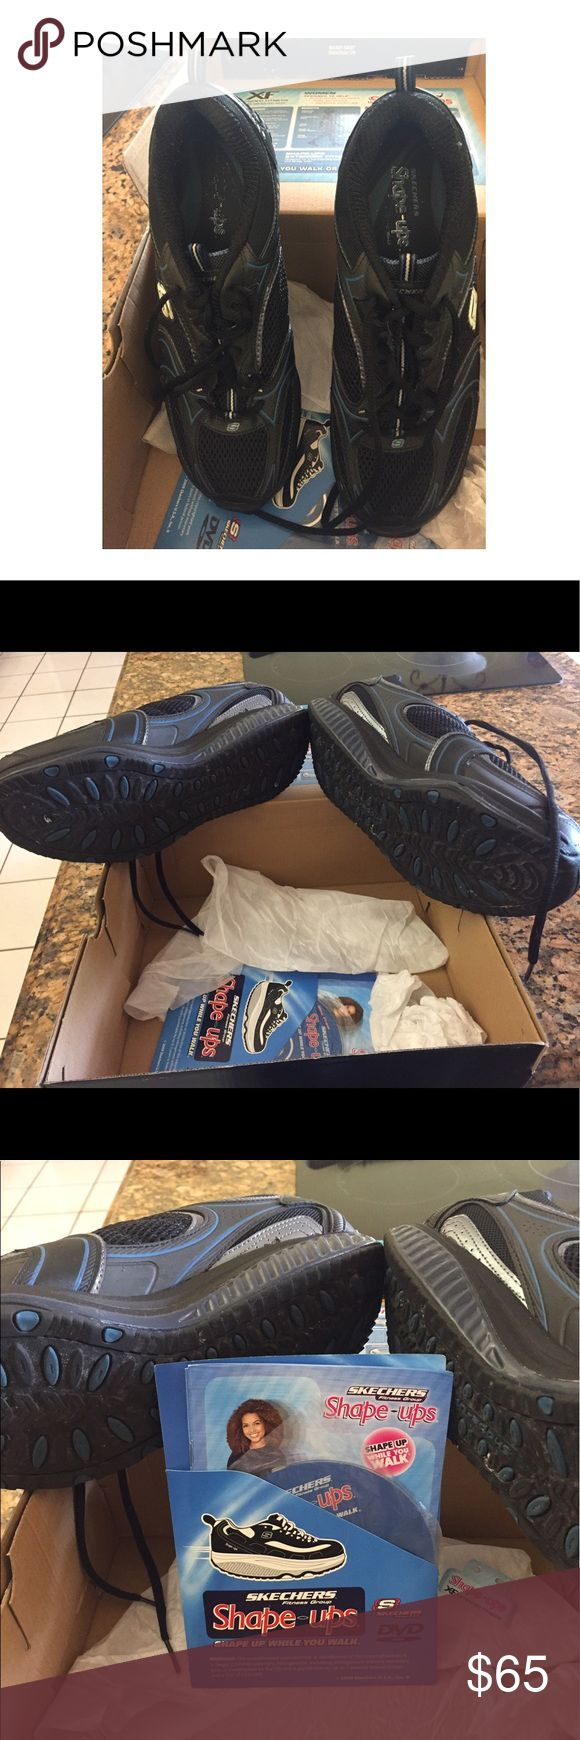 Shape up ladies sneakers X-F women's Shape Ups Sneakers with box, brochure and CD. Worn a few times. Mint condition. Skechers Shoes Sneakers